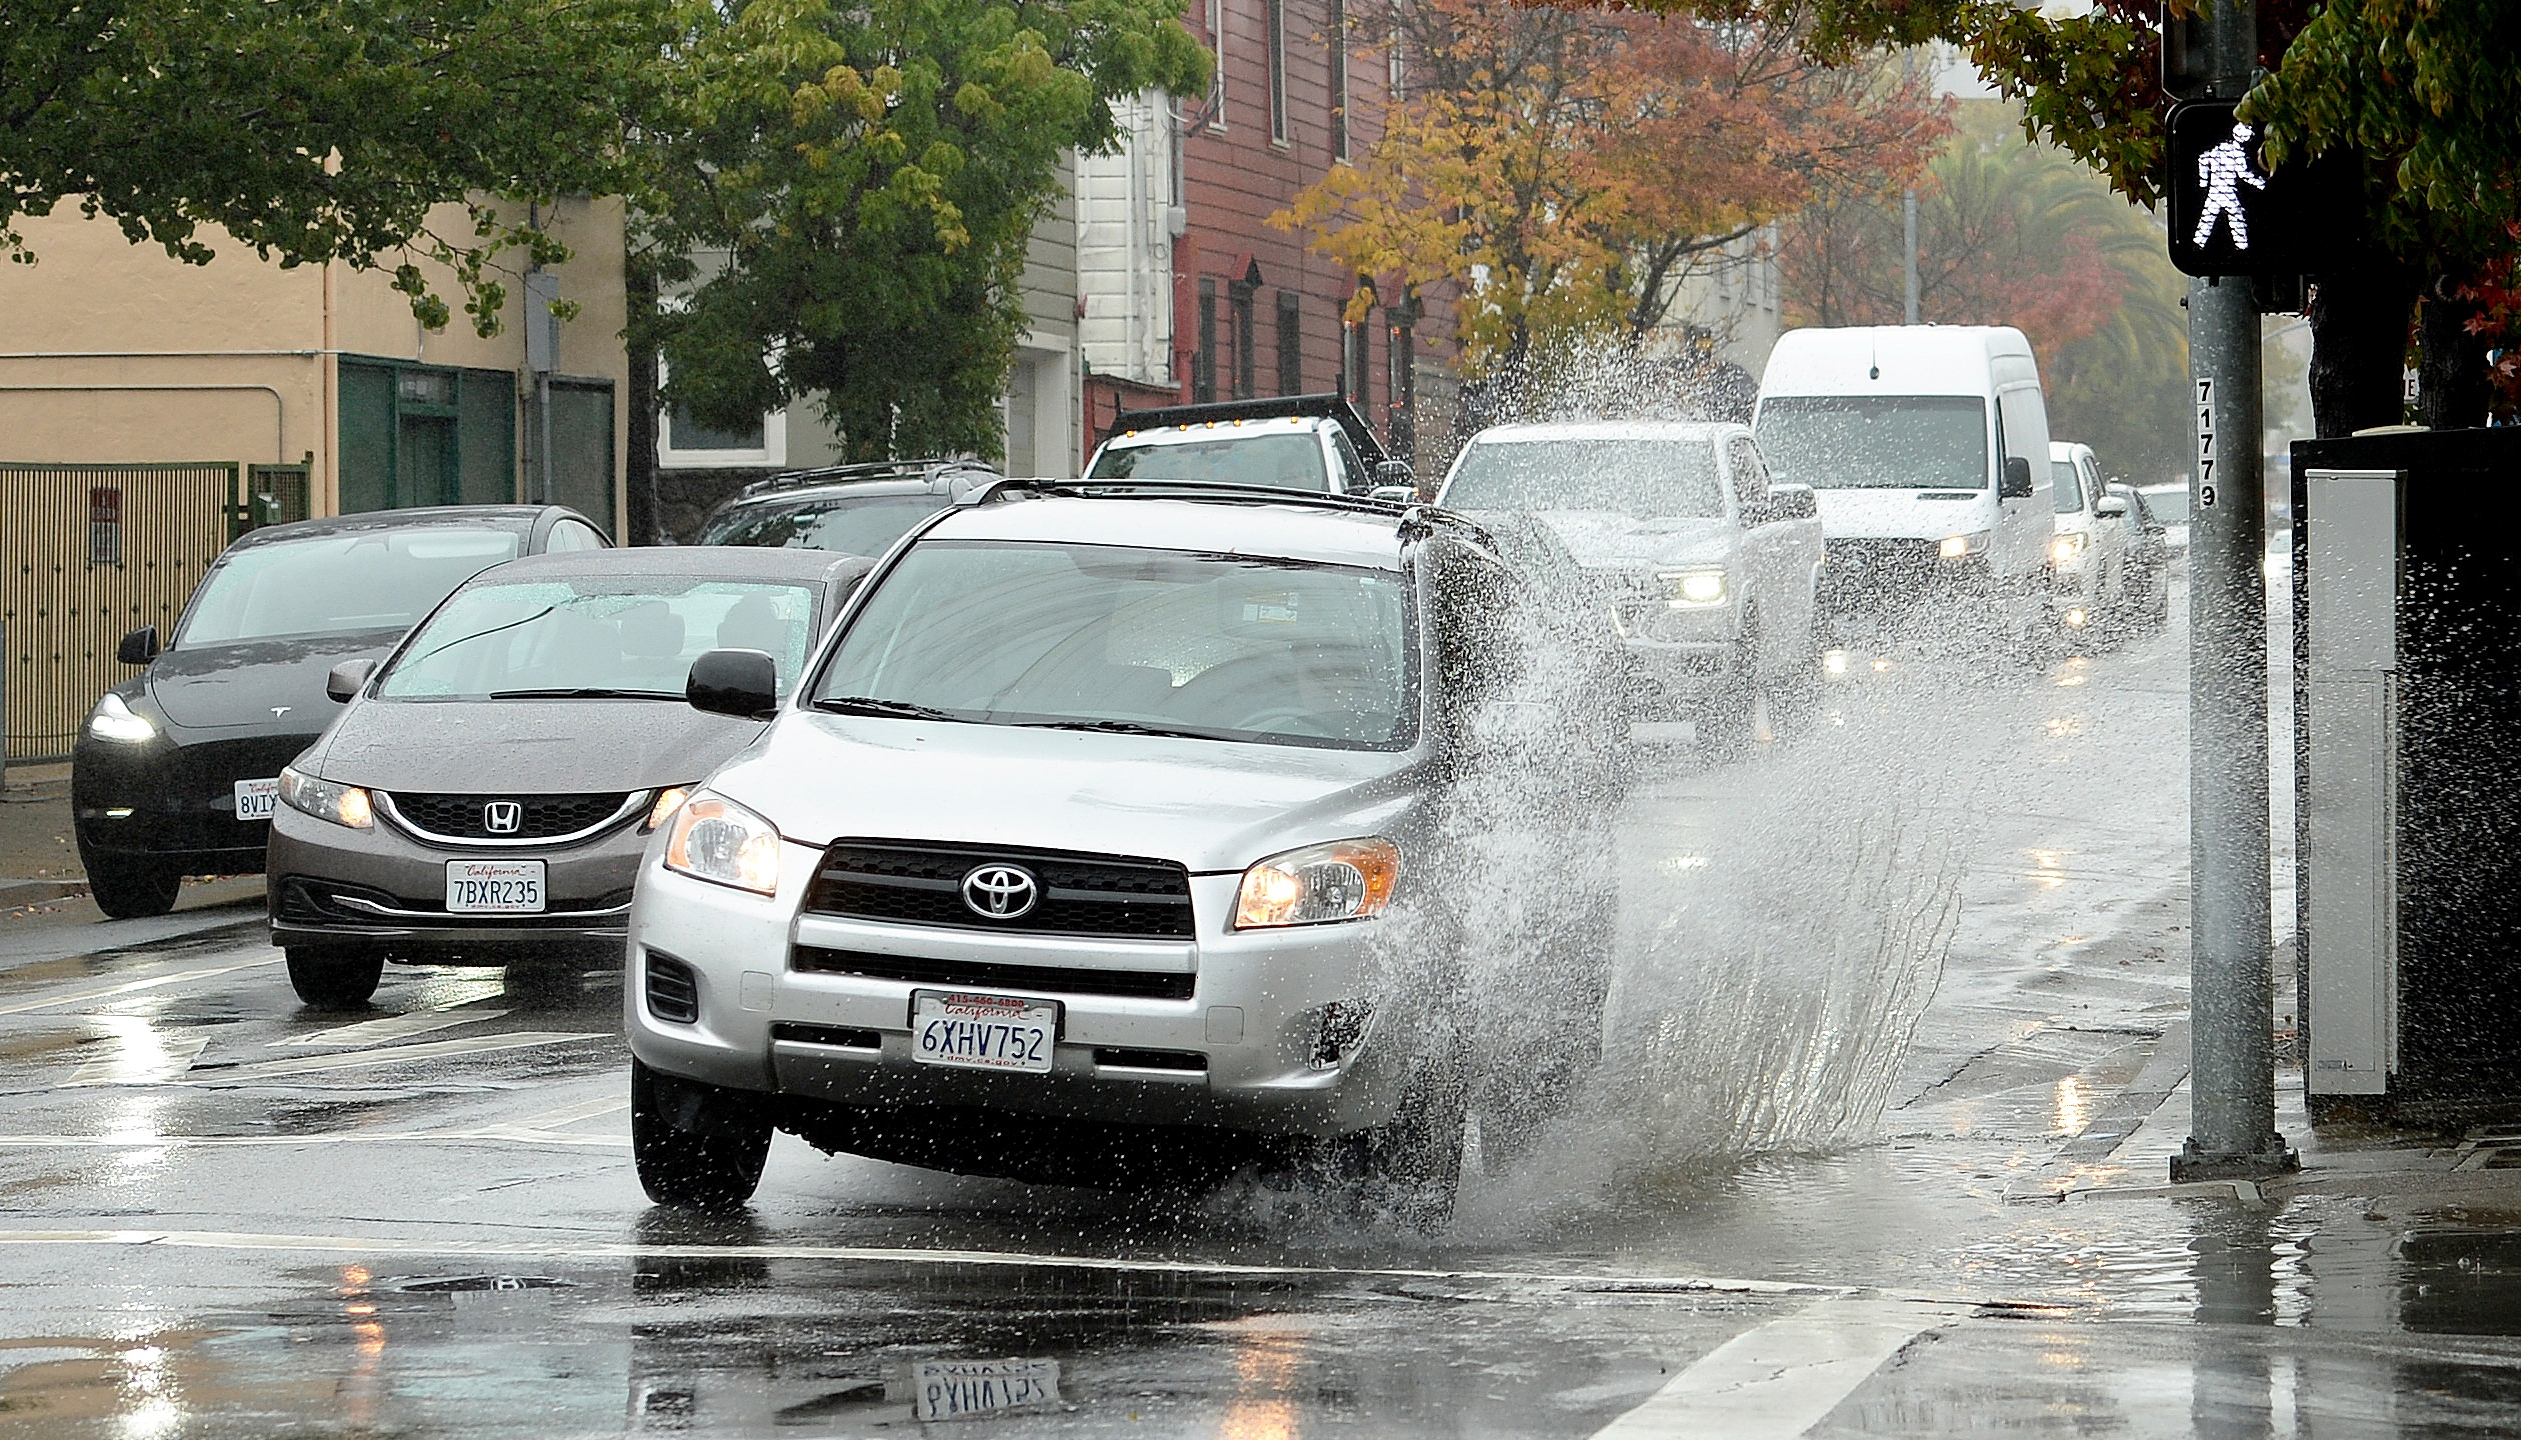 A car makes a big splash driving over a puddle on Third Street in San Rafael, Calif. on Thursday, Oct. 21, 2021. (Sherry LaVars/Marin Independent Journal via AP)